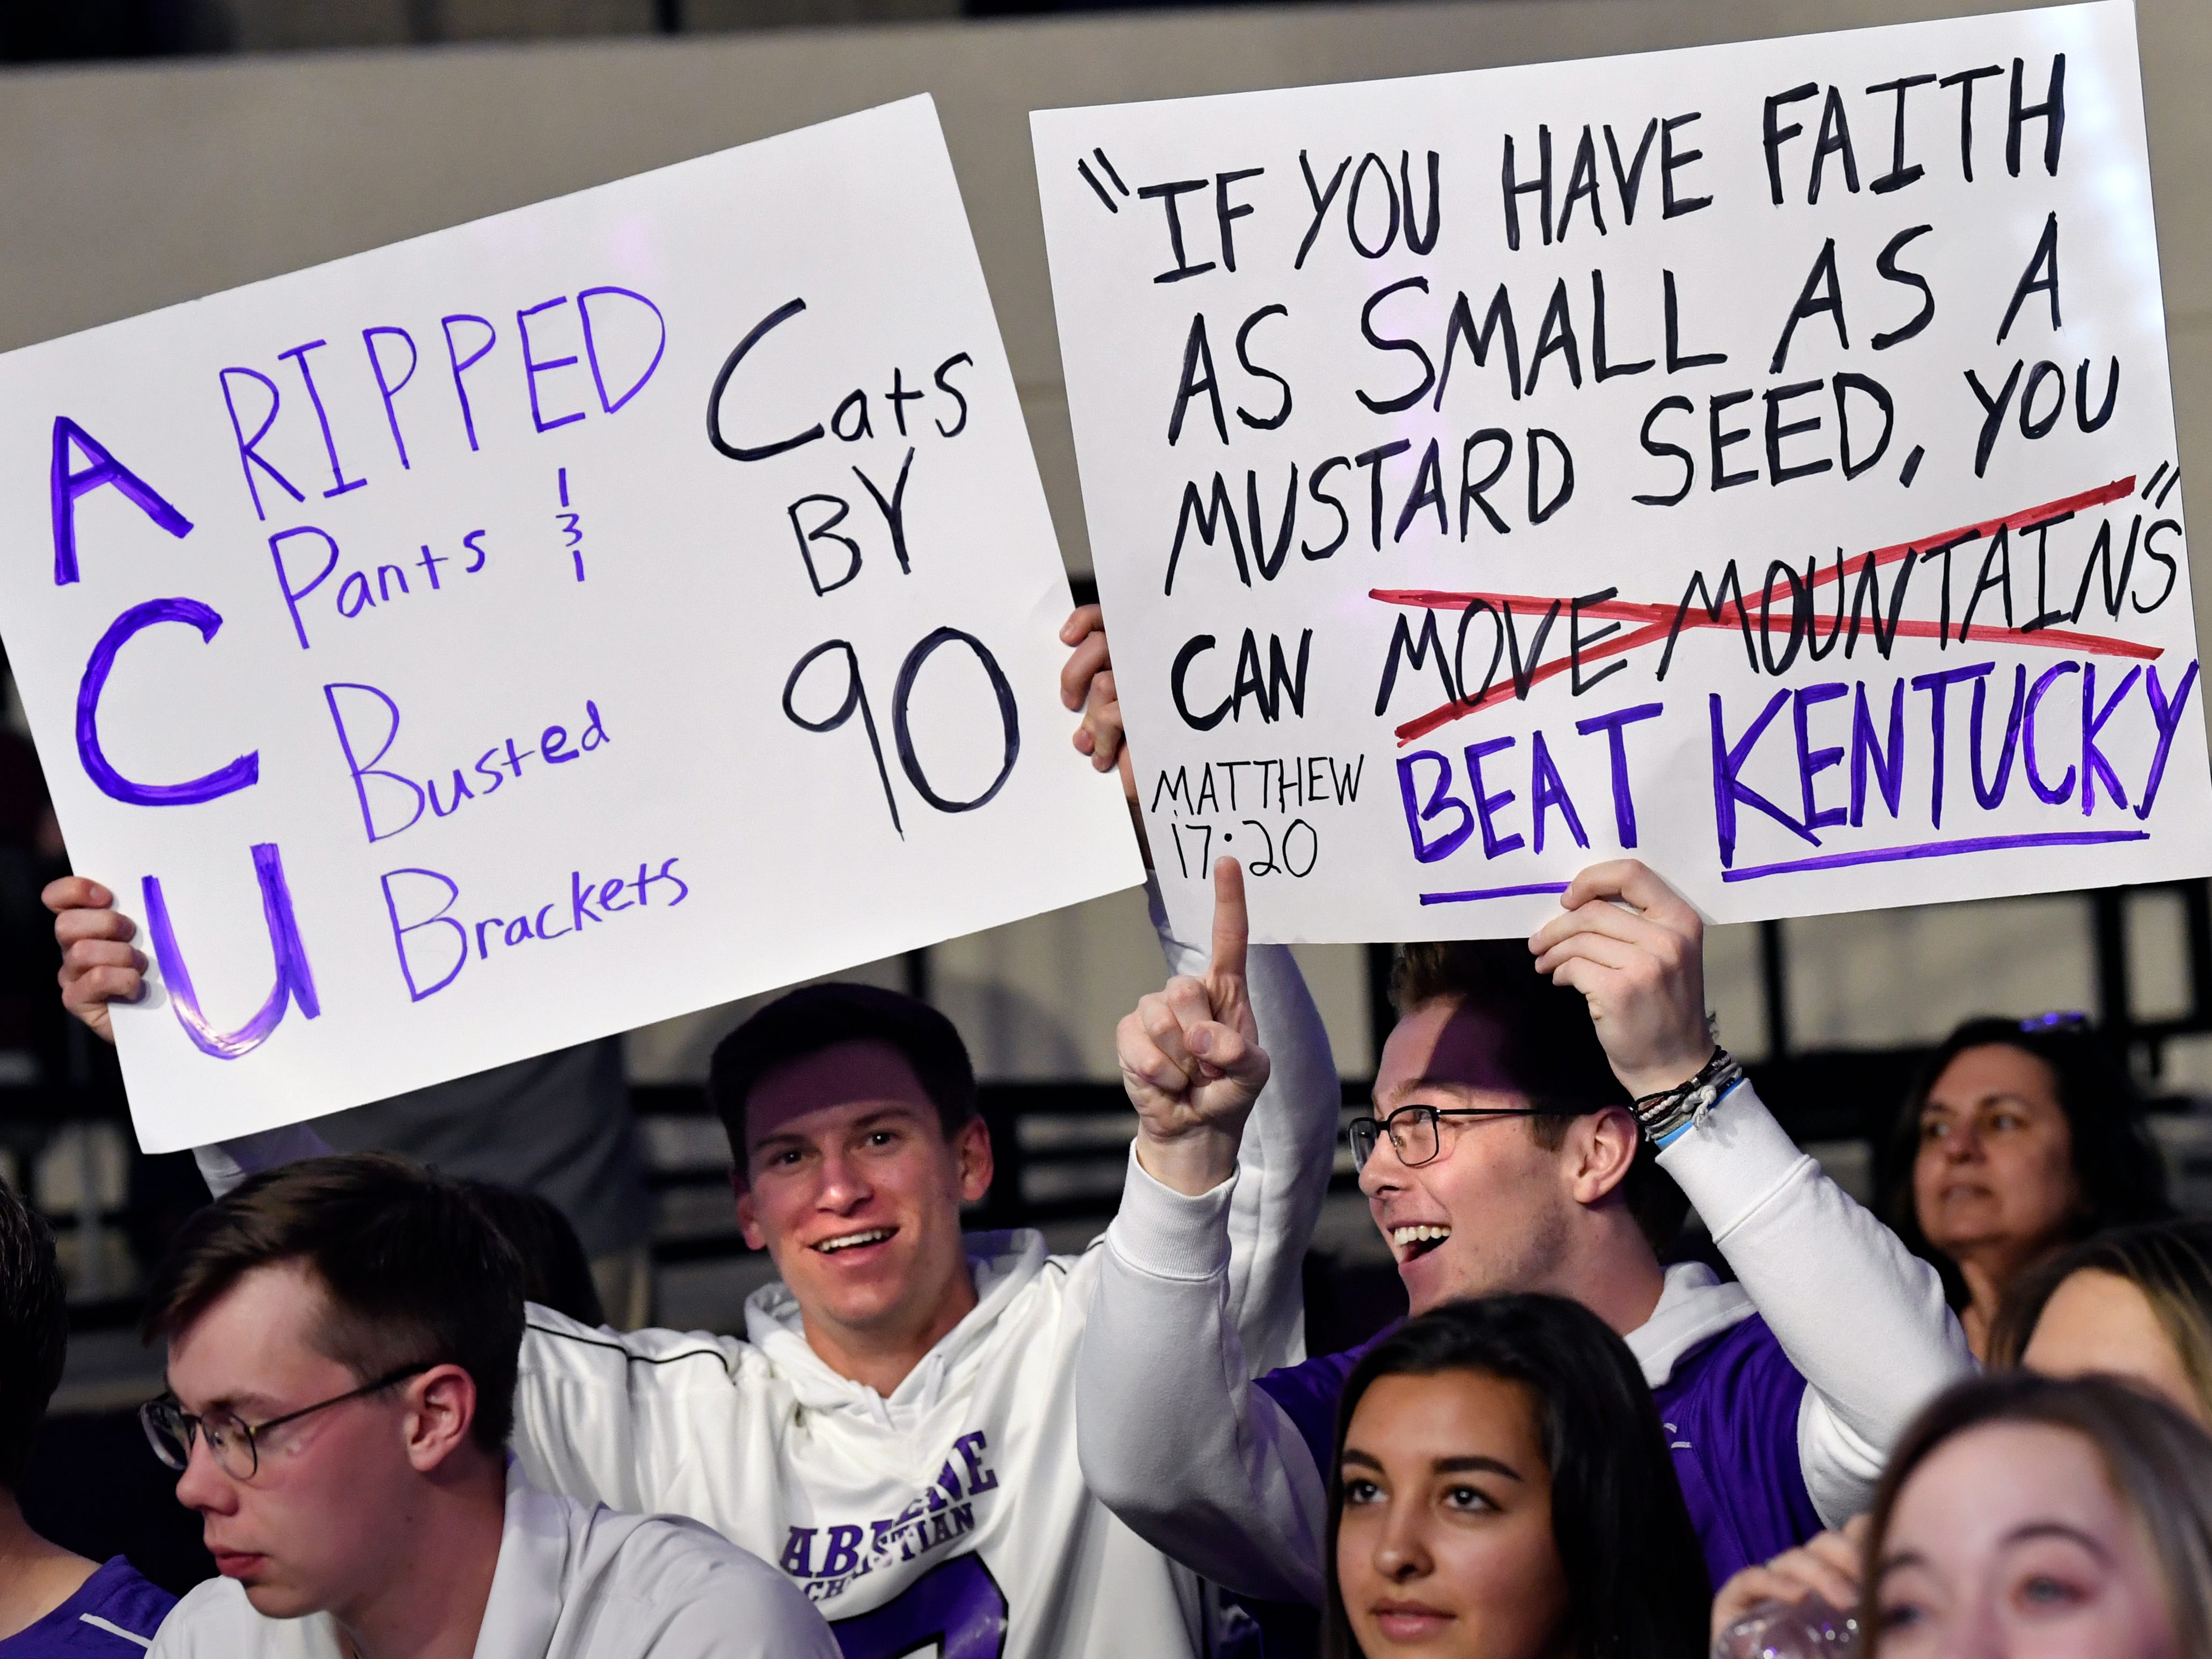 Fans hold signs at the start of Thursday's watch party at Abilene Christian University's Moody Coliseum March 21, 2019. The ACU men took on basketball powerhouse University of Kentucky in their first-ever trip to the NCAA Tournament. Final score was 79-44, Kentucky.